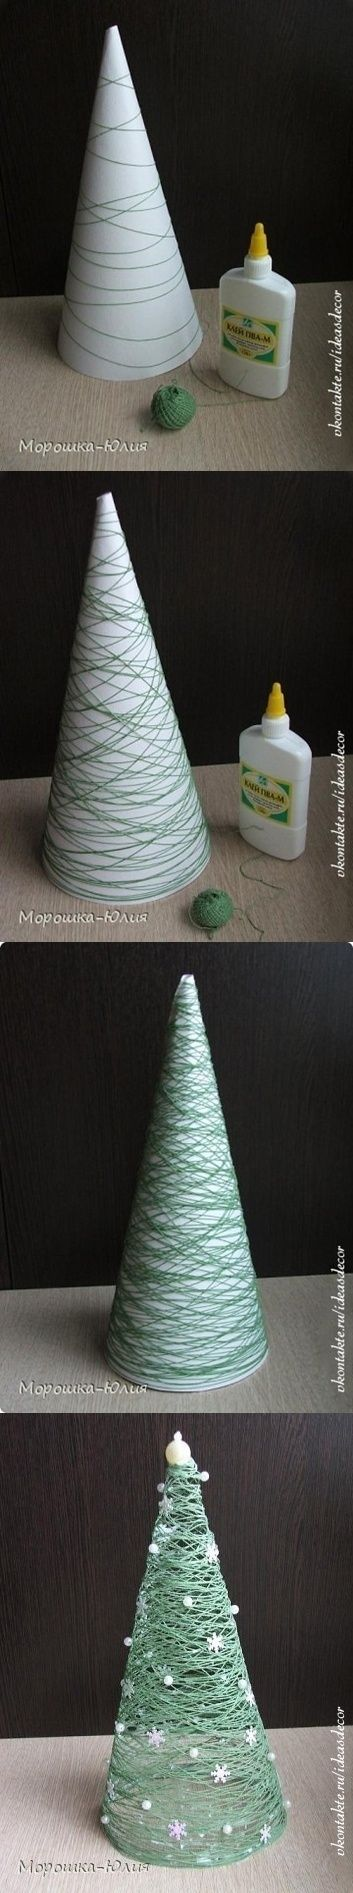 DIY: Christmas tree http://craftingintherain.blogspot.com/2012/11/cone-christmas-trees-ideas.html